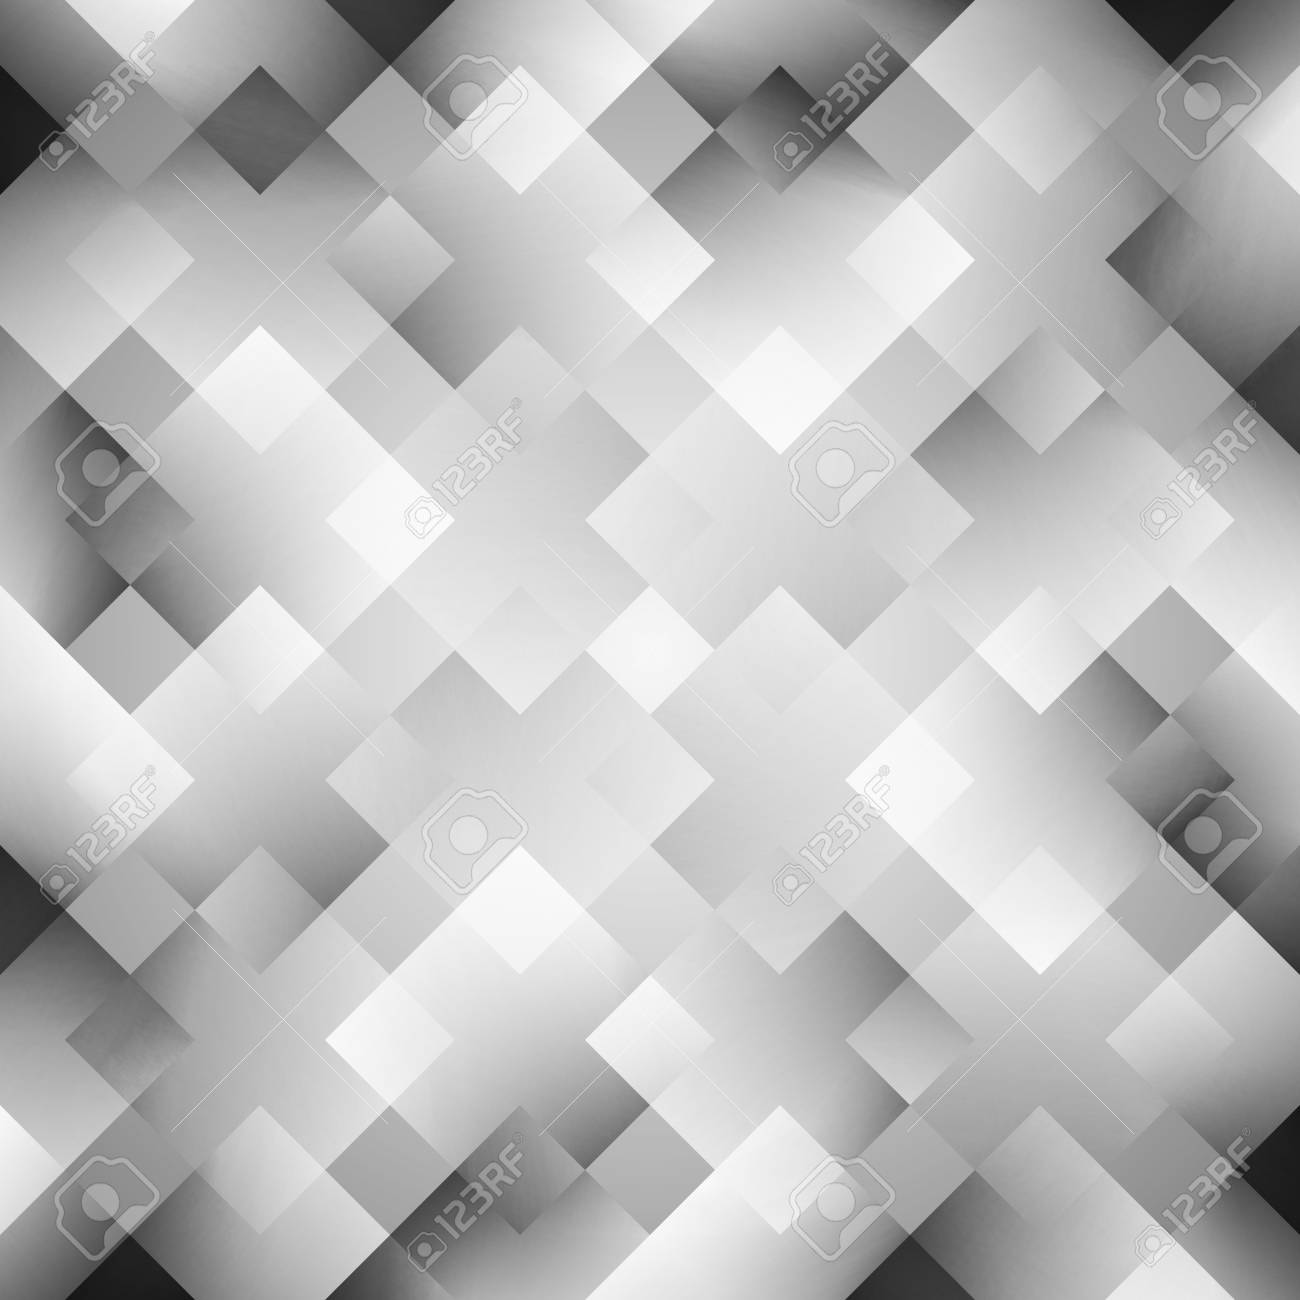 Abstract Wallpaper Illustration For Modern Business Design Stock Photo Picture And Royalty Free Image Image 47421285